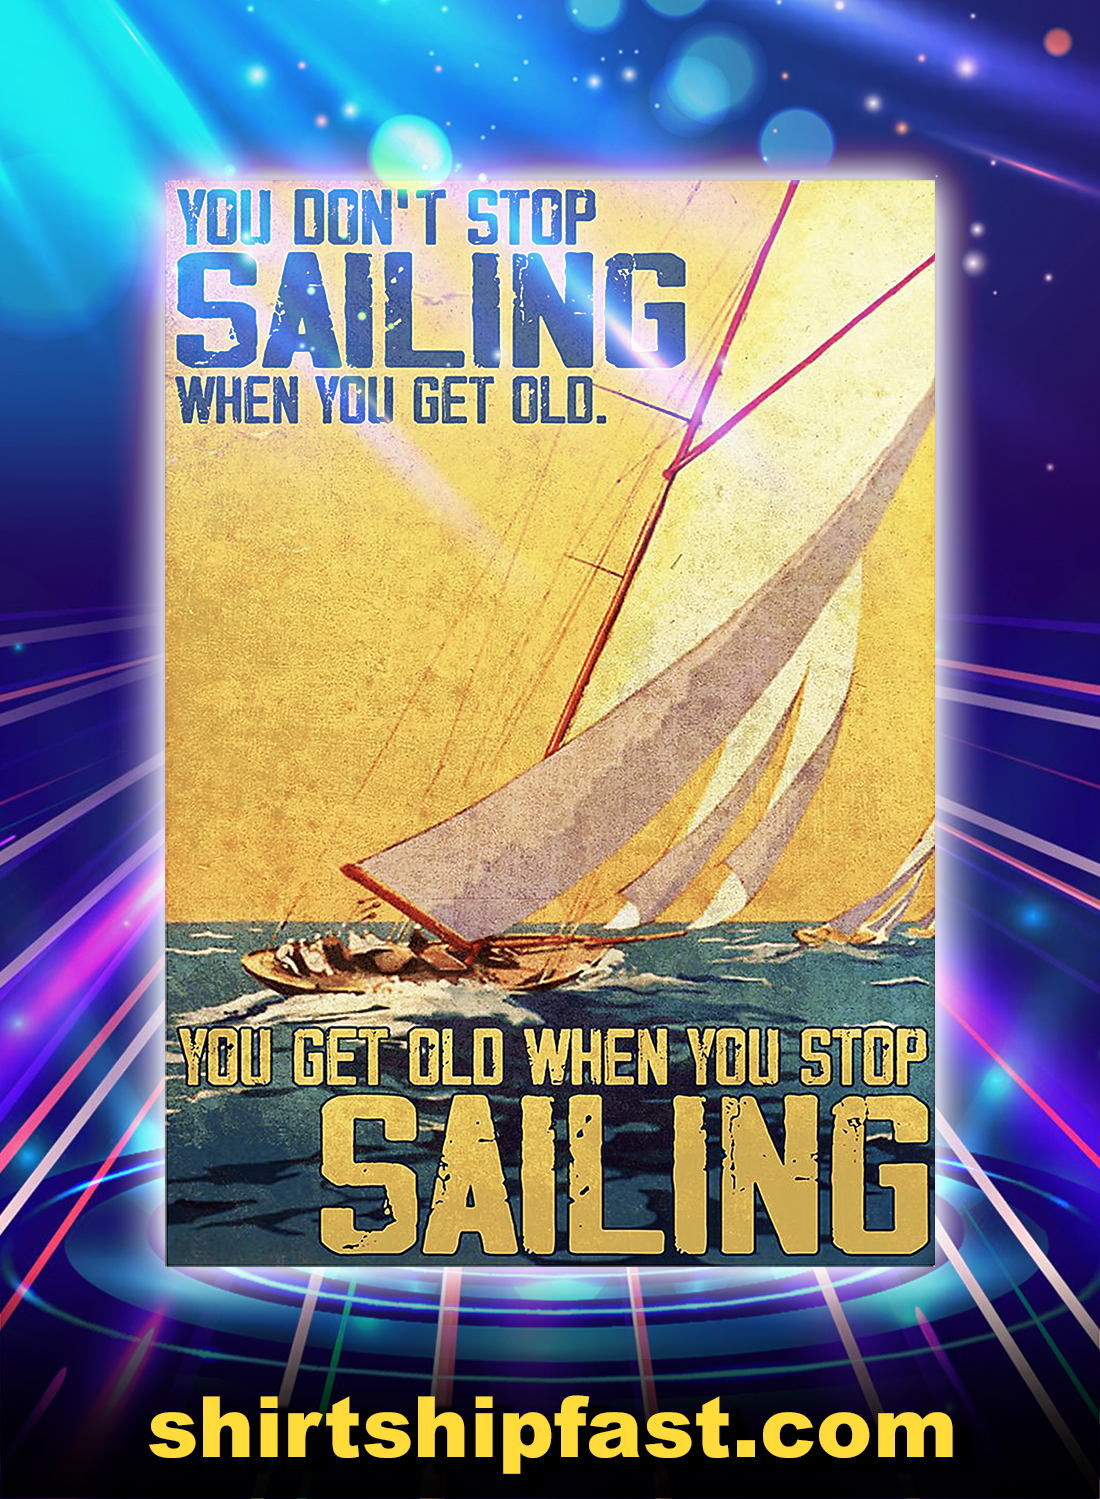 You don't stop sailing when you get old poster - A4